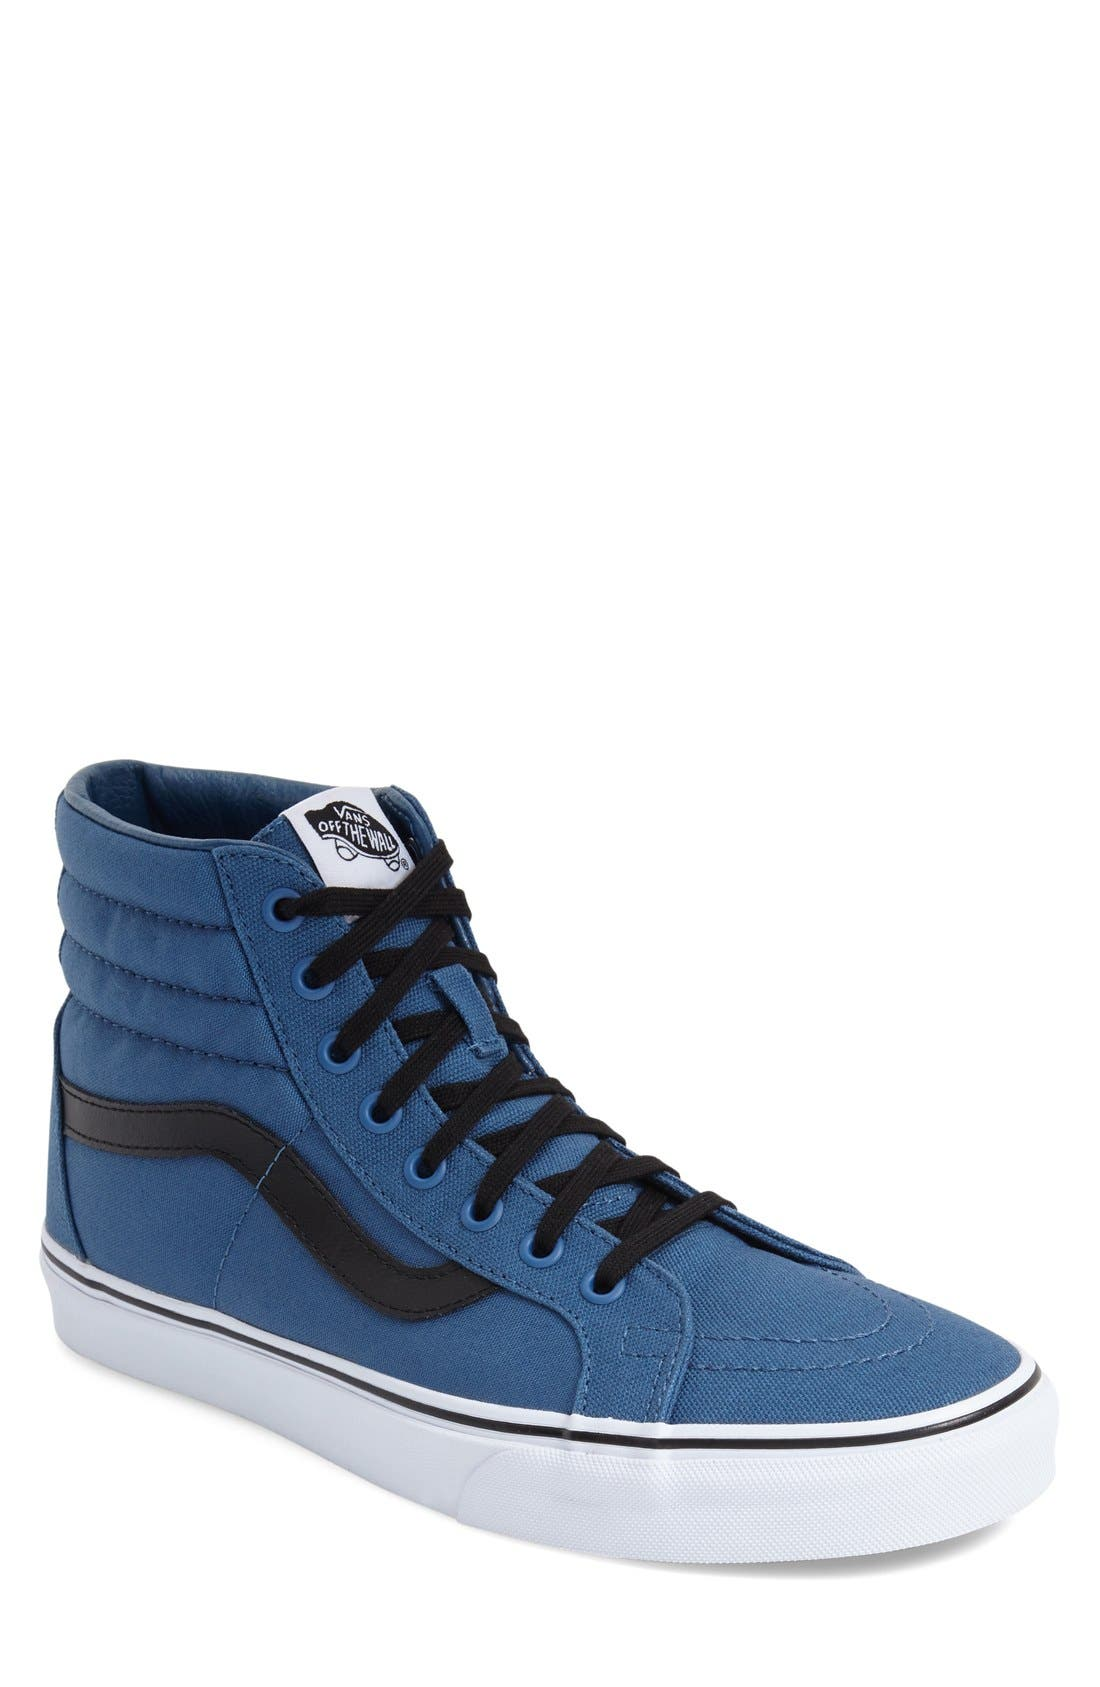 Alternate Image 1 Selected - Vans 'Sk8-Hi Reissue' Sneaker (Men)